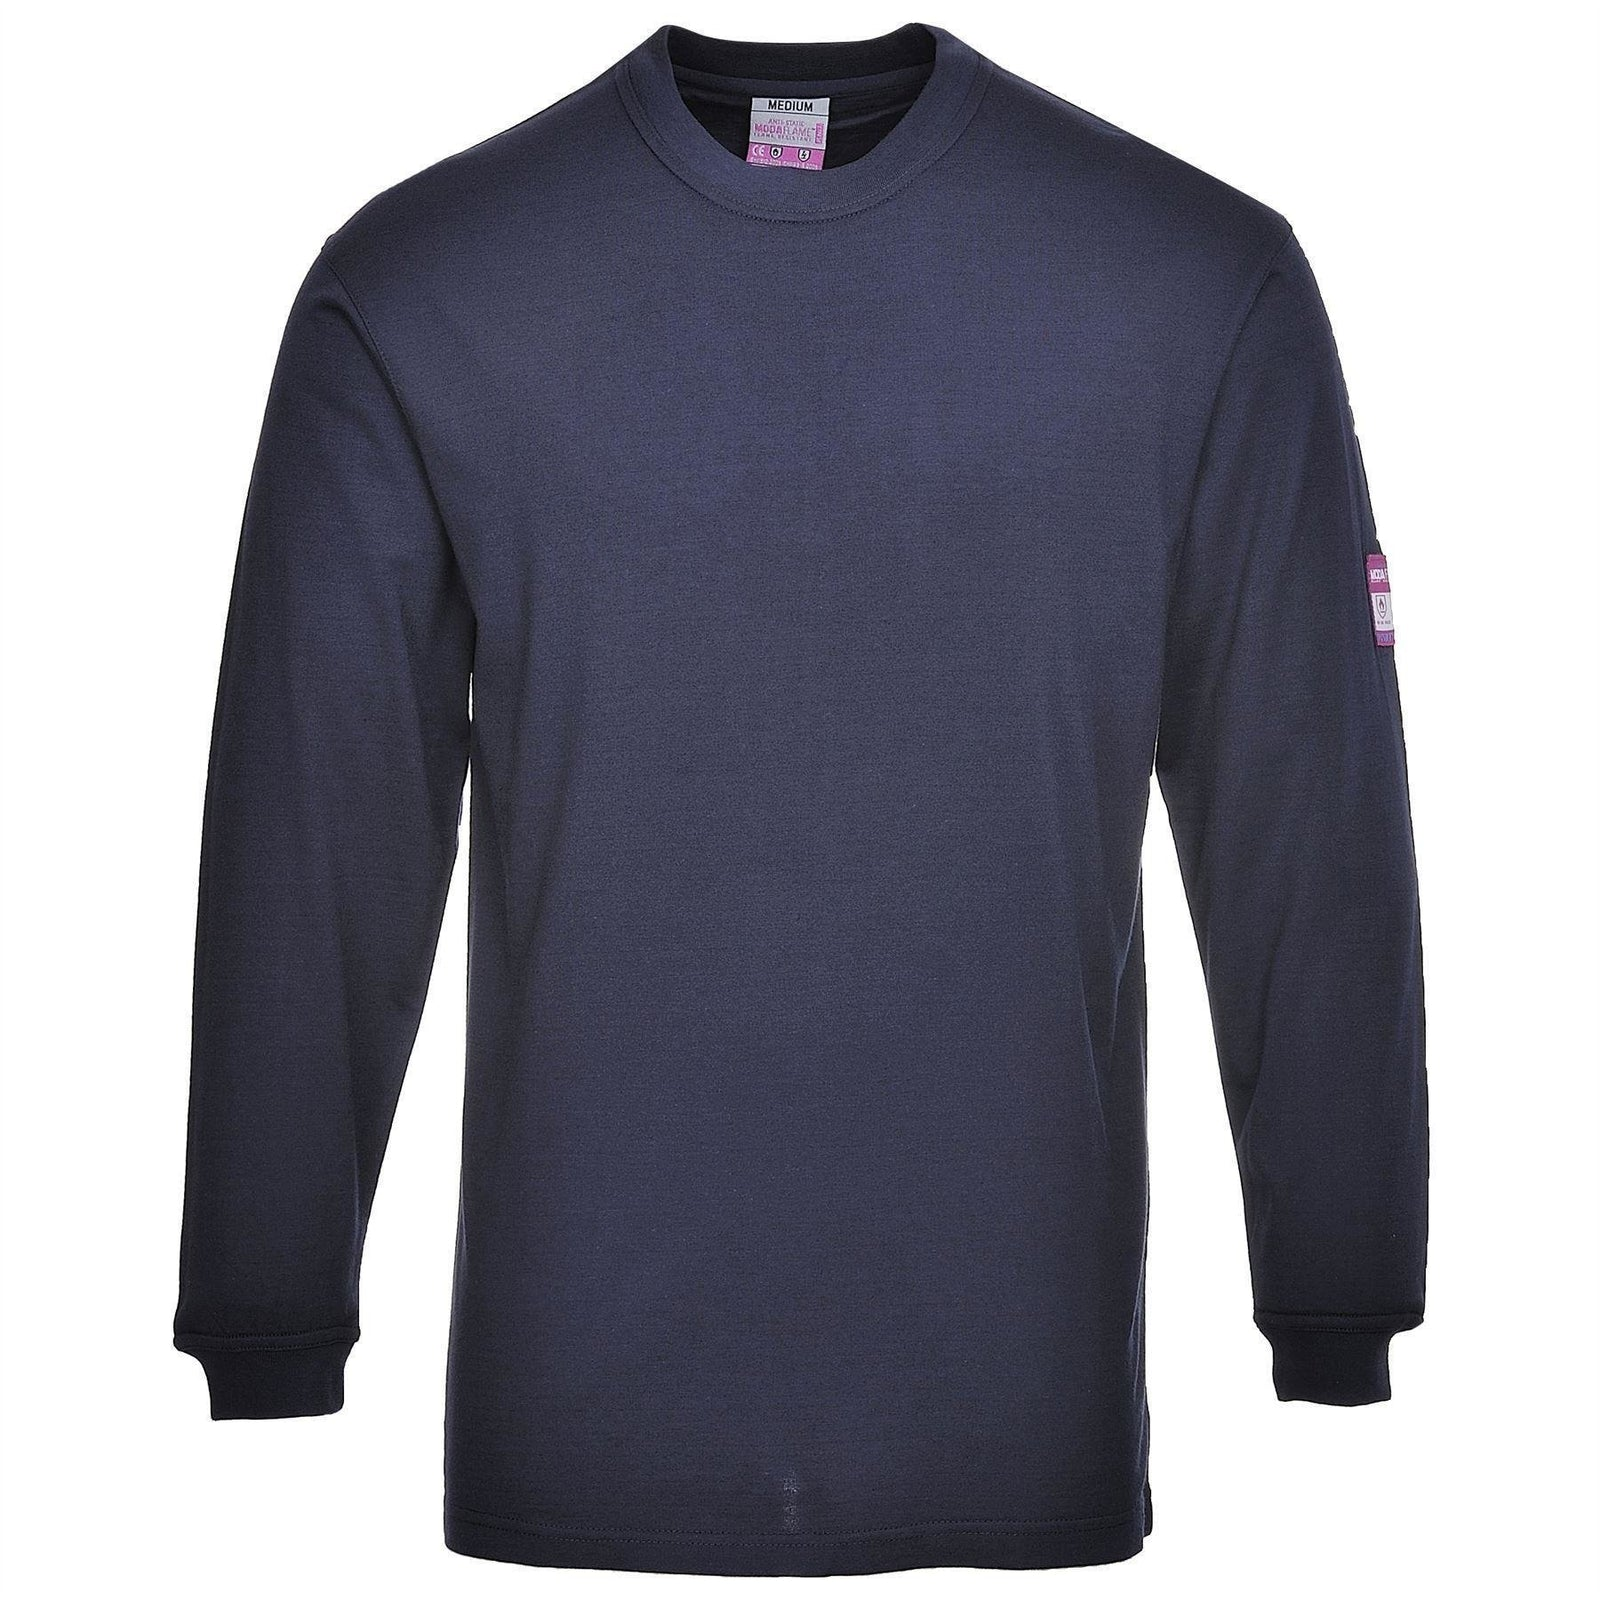 Portwest Flame Resistant Anti-Static Long Sleeve T-Shirt FR11 - reid outdoors